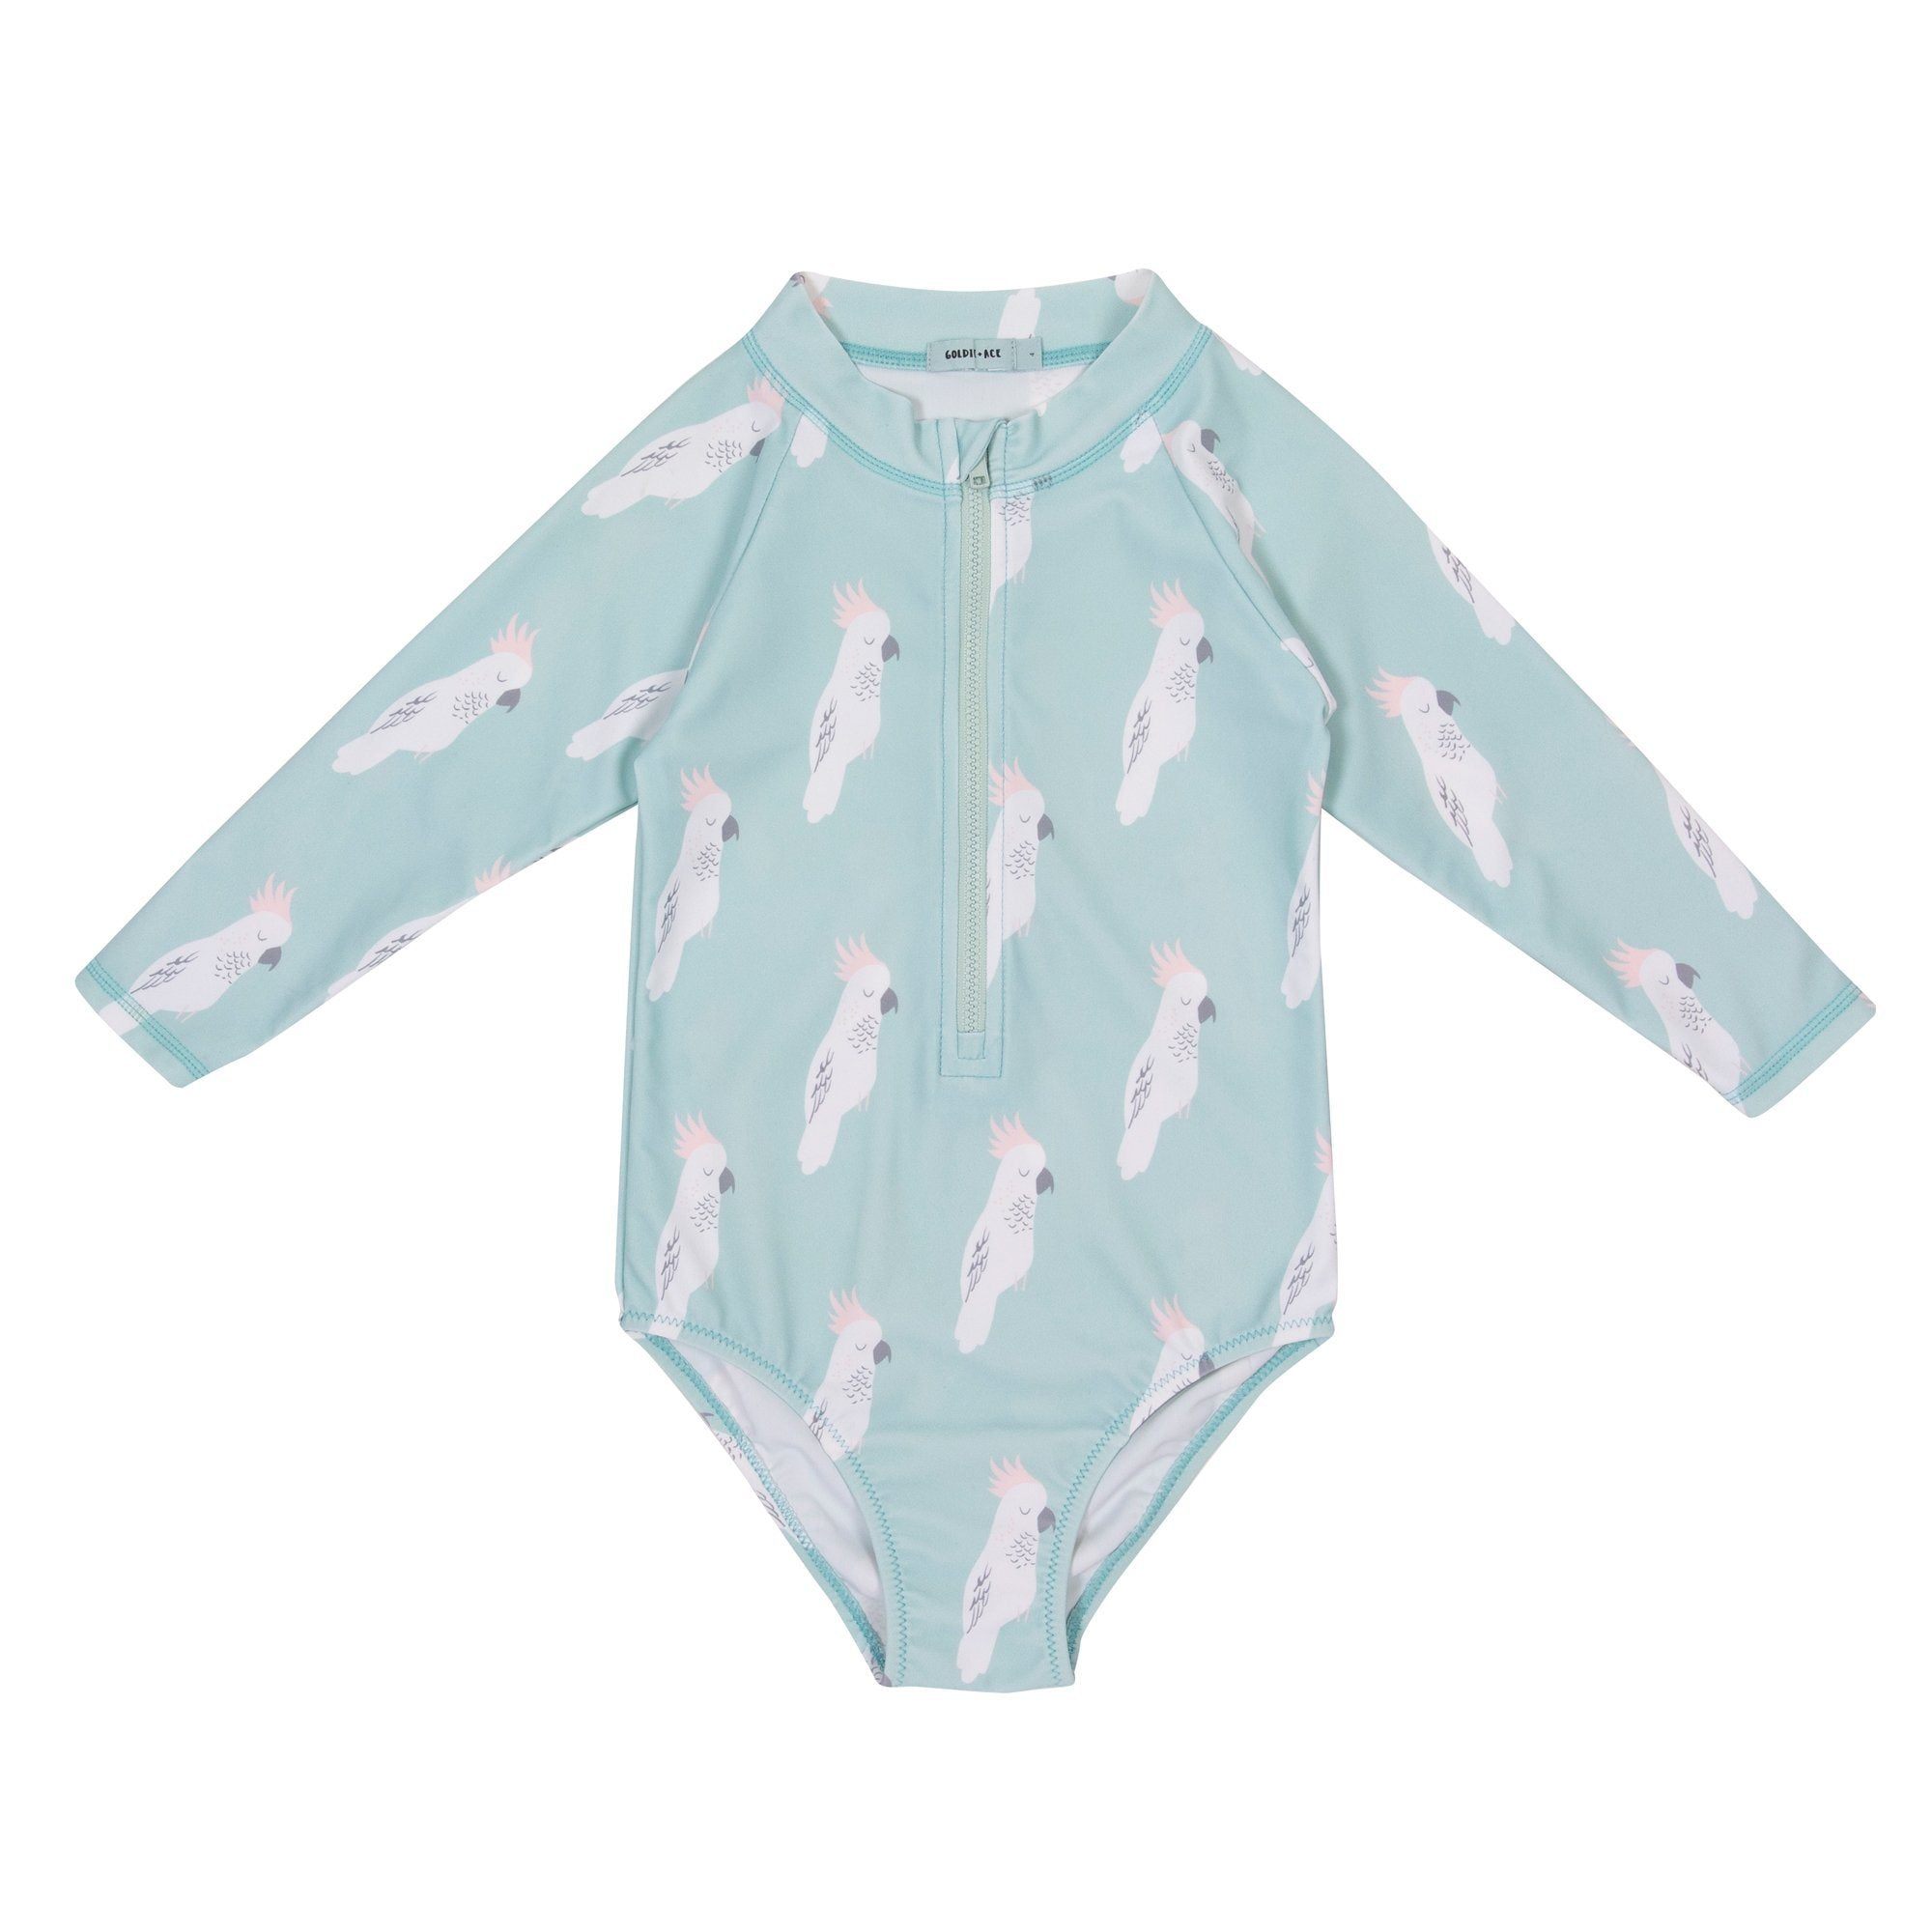 Cockatoo Party Zip Up Sunsuit (Surf Spray)